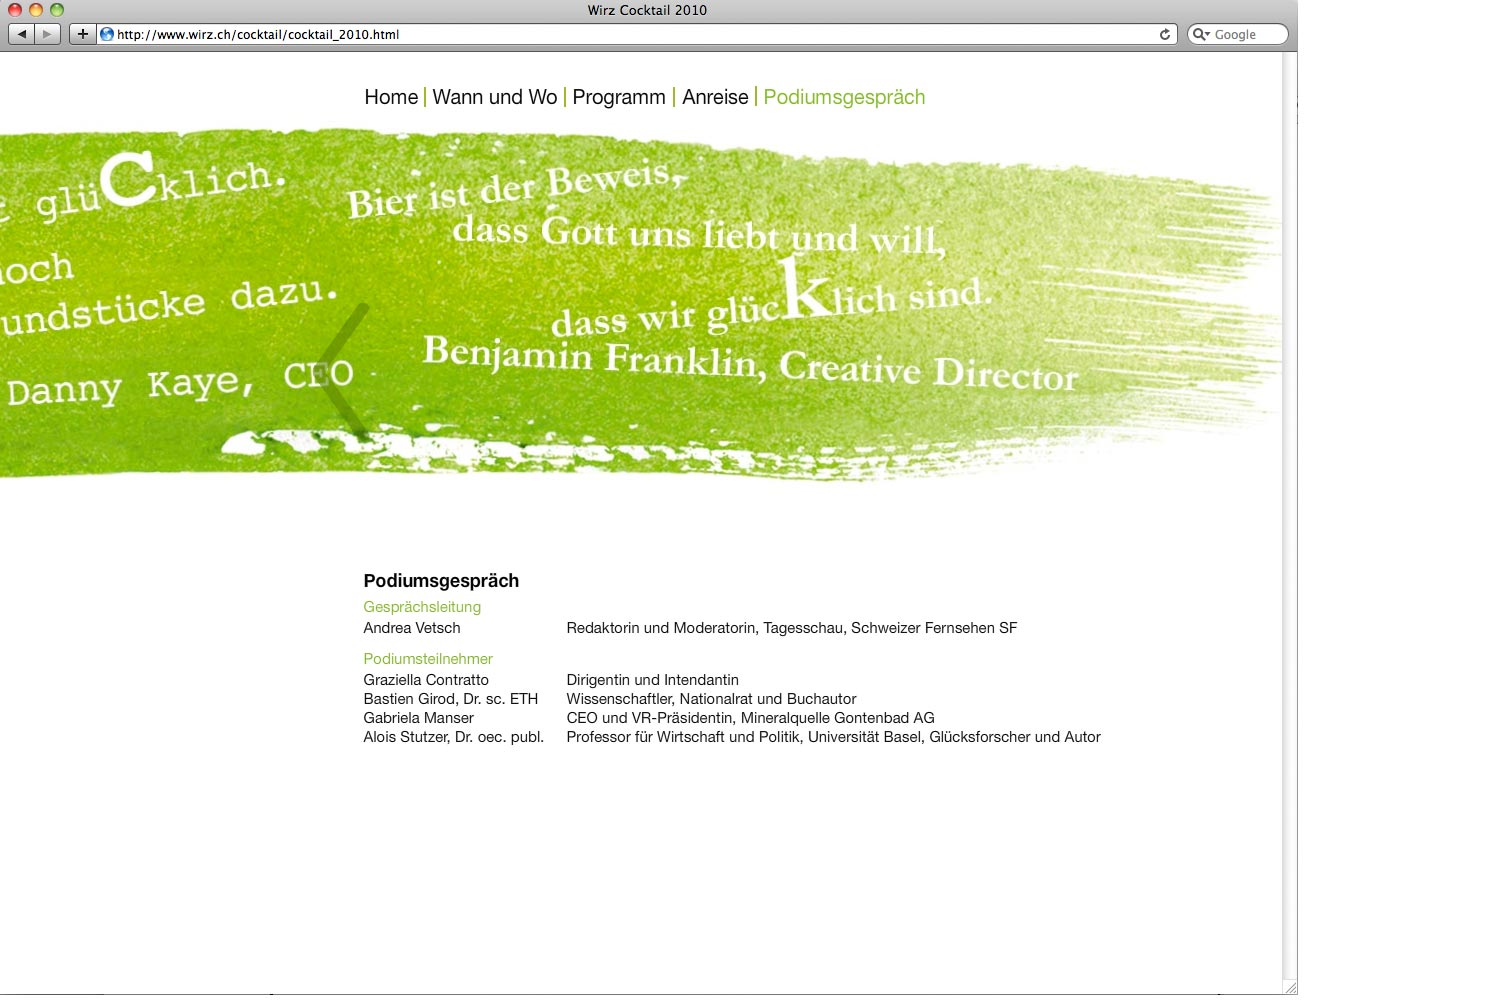 portfolio-web-website-w.cocktail2010-4.jpg